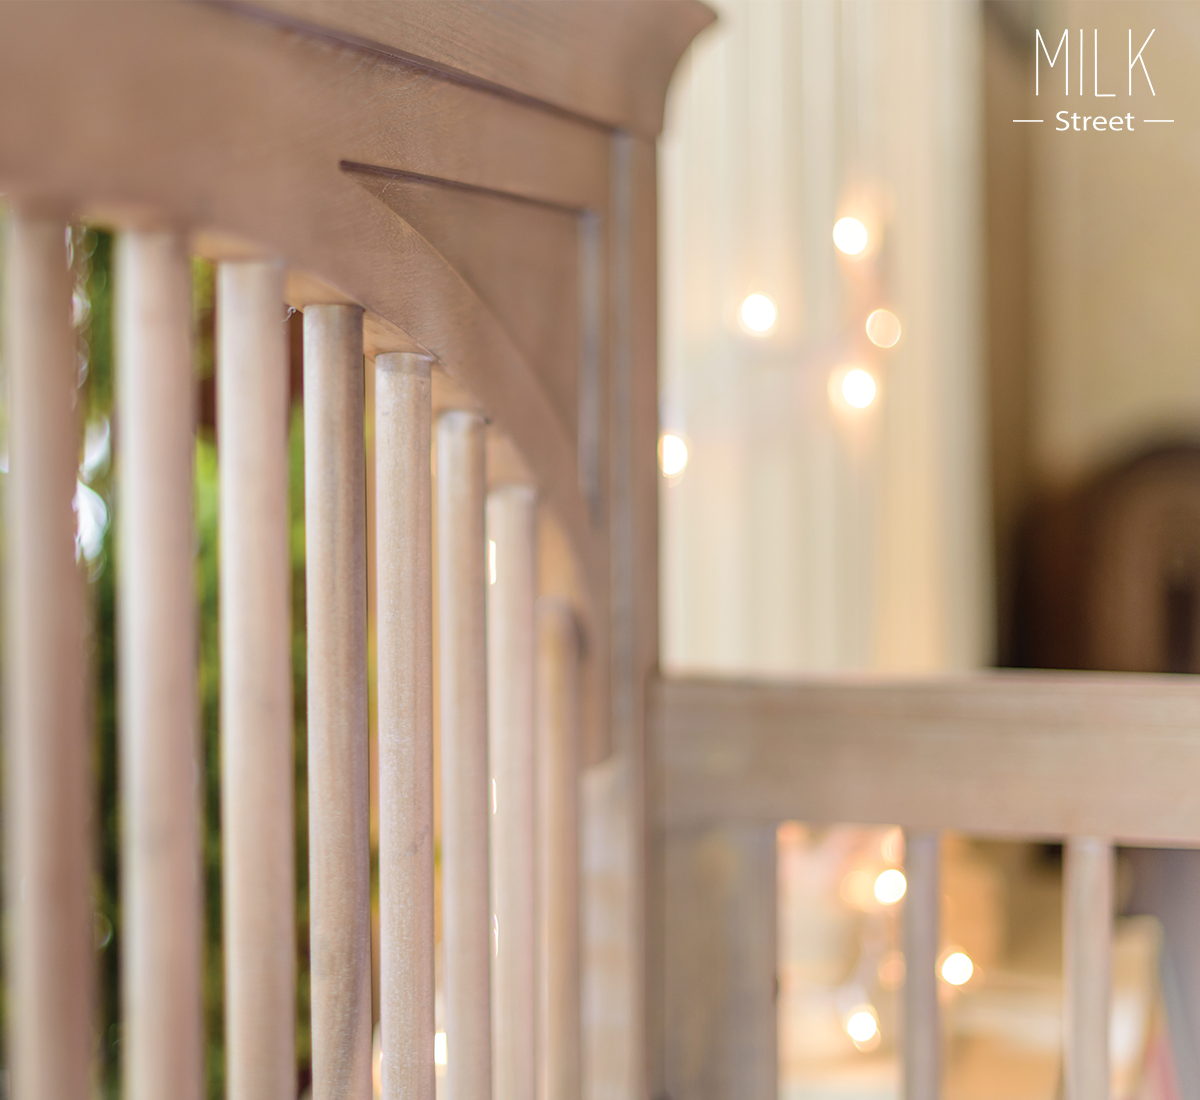 Milk Street, Milk Street Furniture, Milk Street Baby Furniture